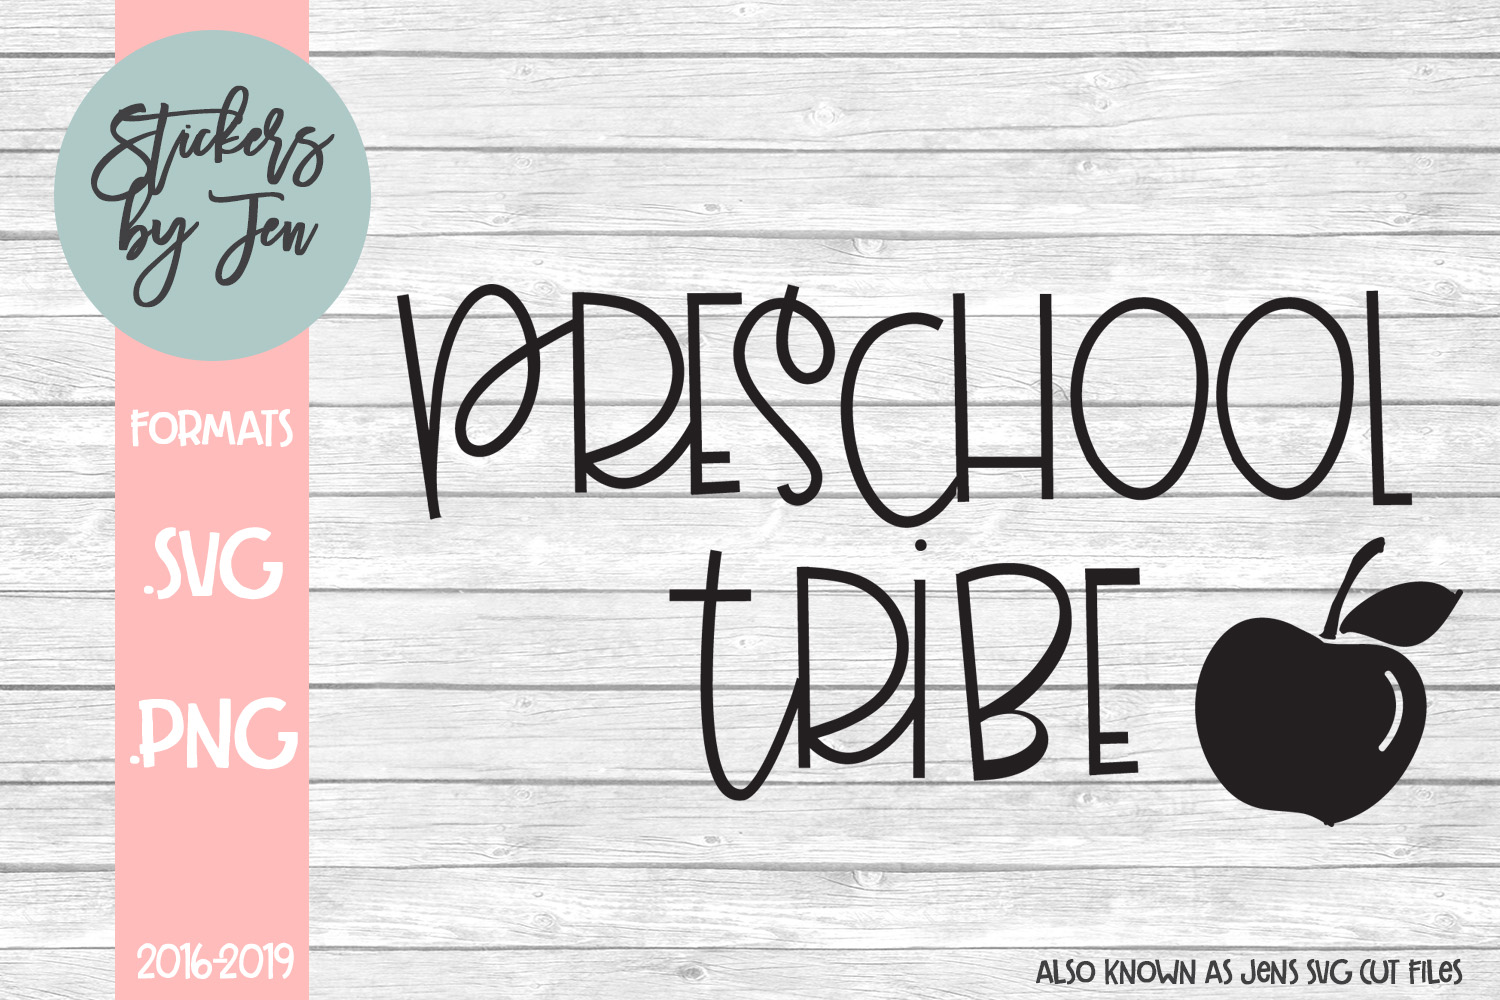 Download Free Preschool Tribe Graphic By Jens Svg Cut Files Creative Fabrica for Cricut Explore, Silhouette and other cutting machines.